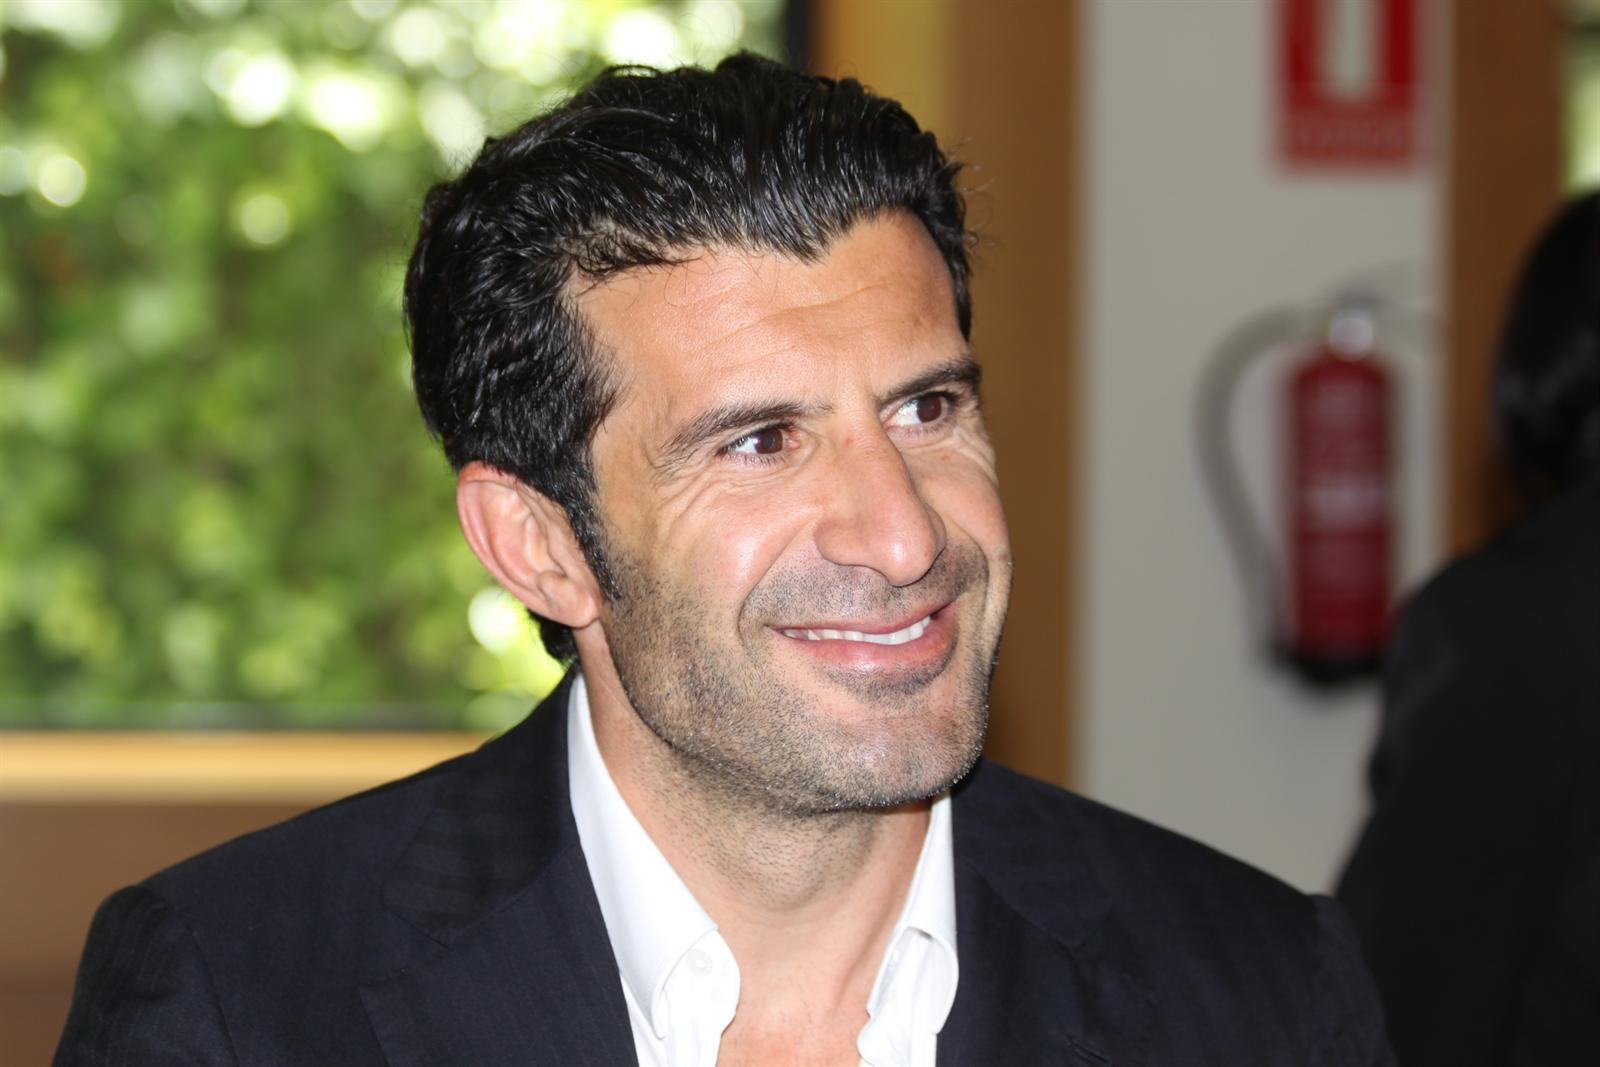 Former Portuguese international Luis Figo has announced that he will stand for FIFA President ©Getty Images